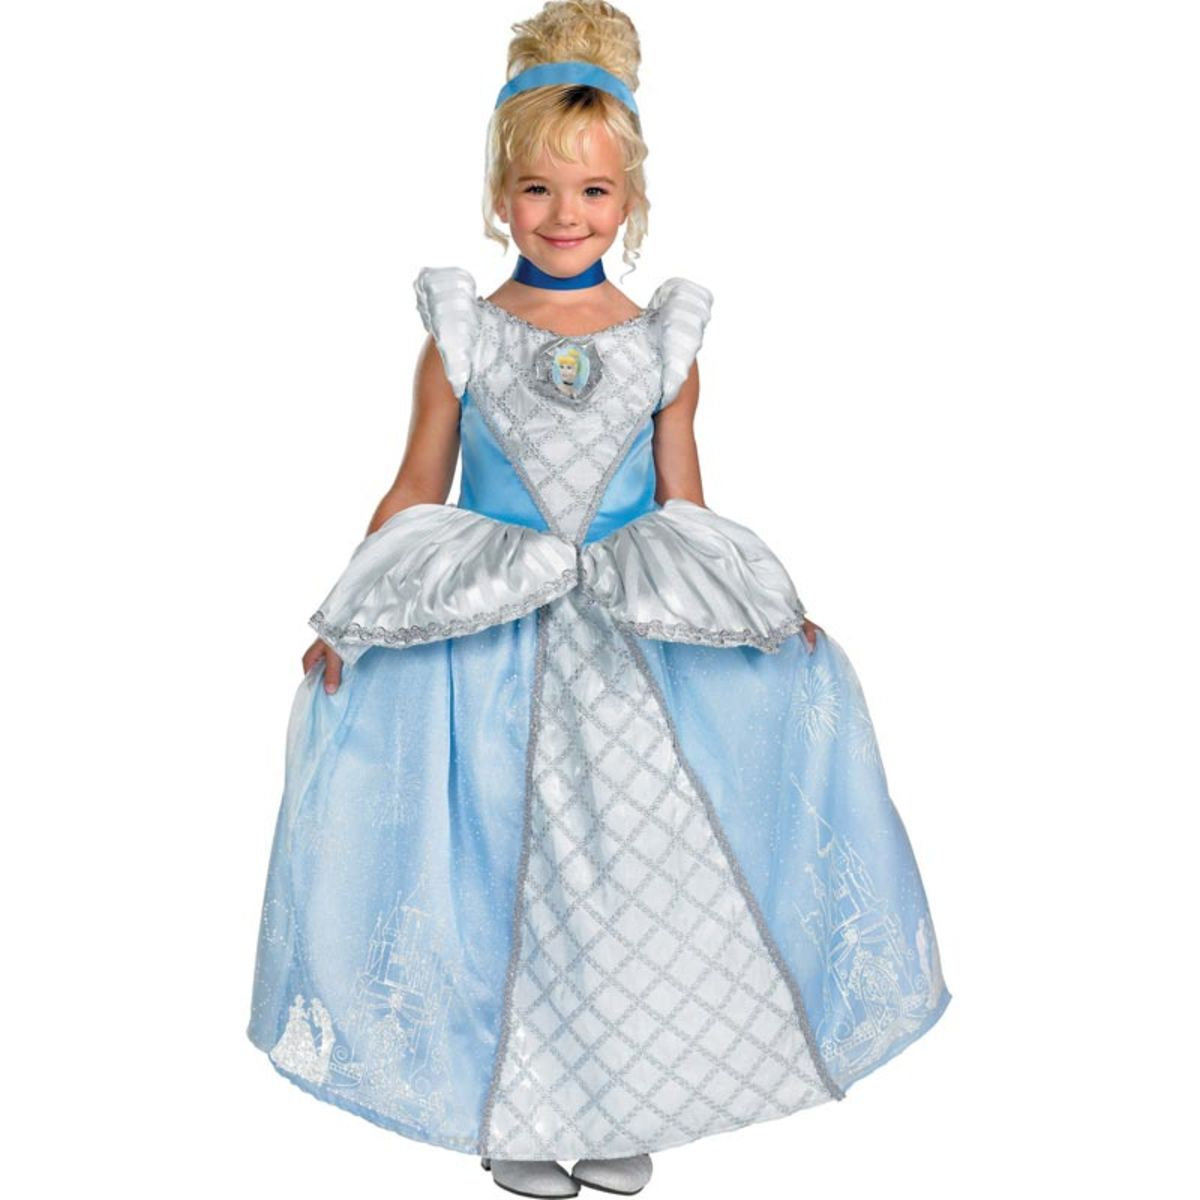 Headline for Top 10 Princess Costumes of 2014 - Official Costumes